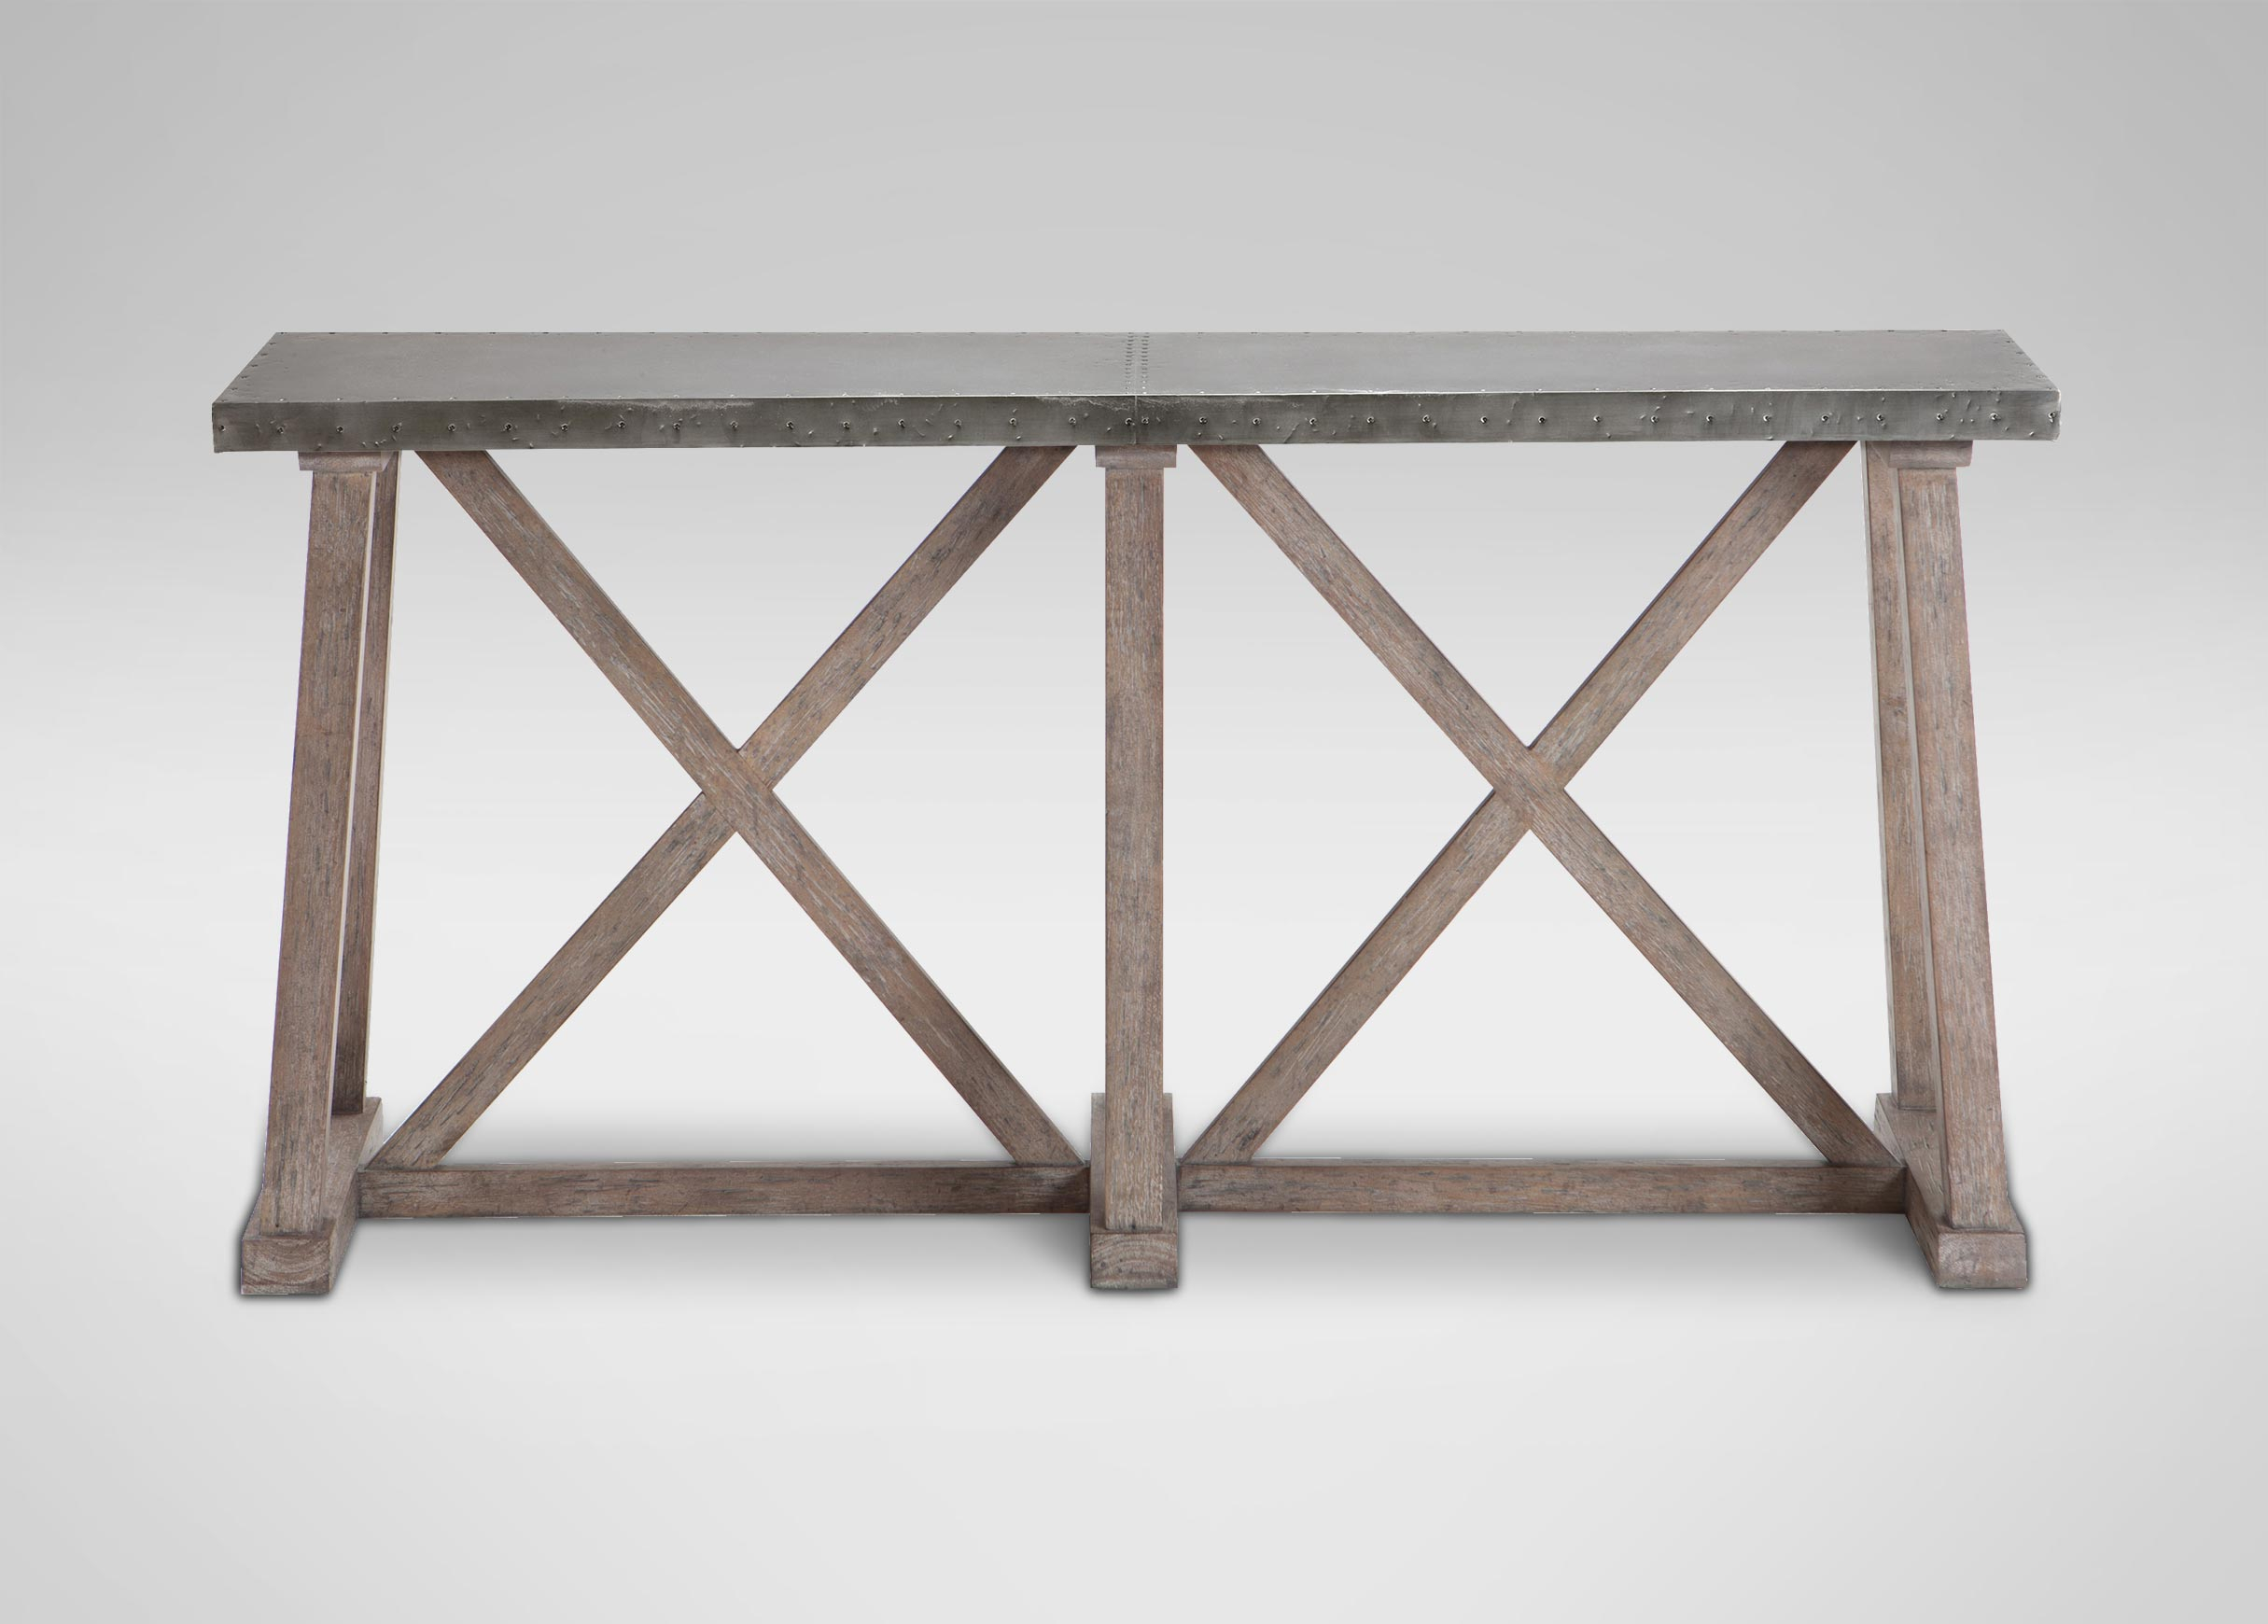 Bruckner Metal Top Console Table Console Tables Ethan Contemporary Inside Ethan Console Tables (View 10 of 30)